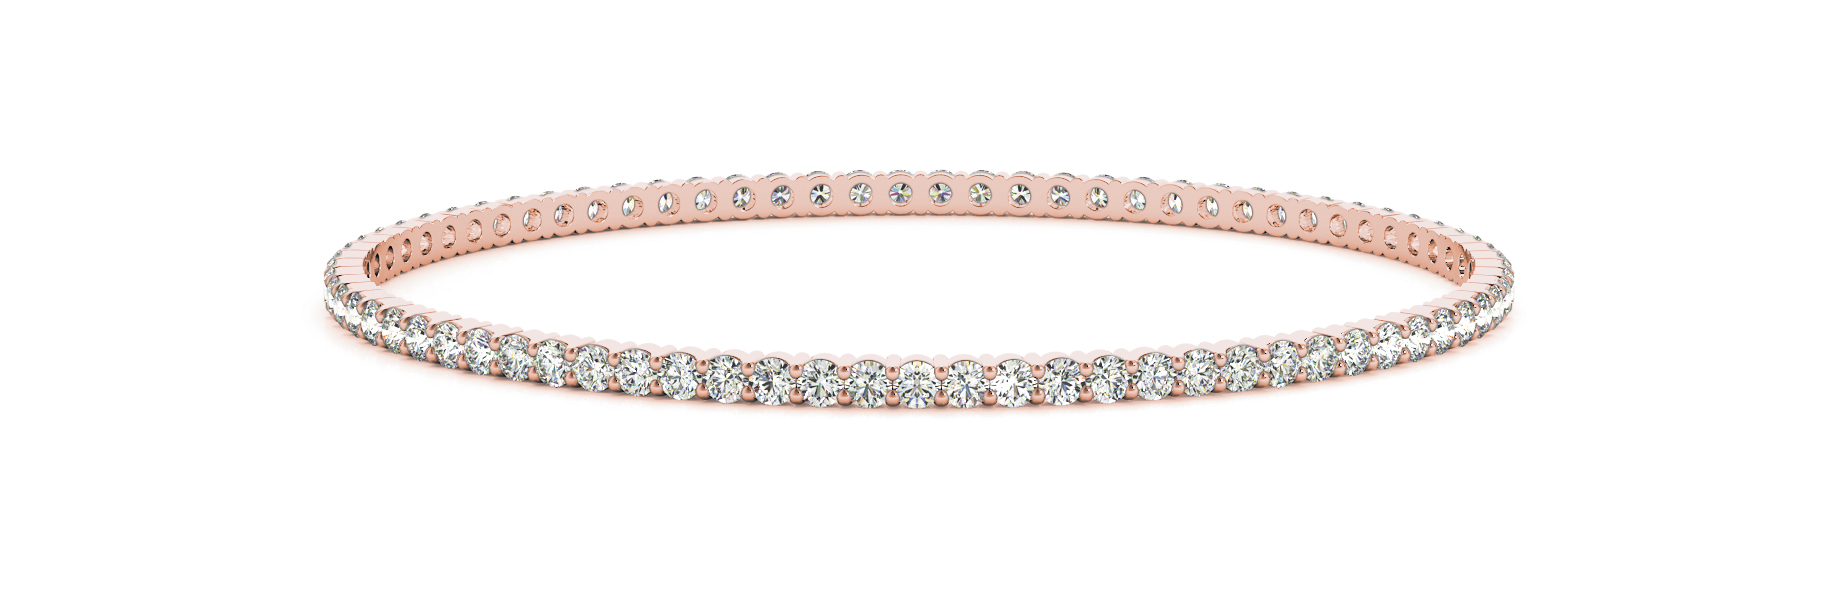 3.4 Carat Round Diamond Eternity Bangle in Rose Gold